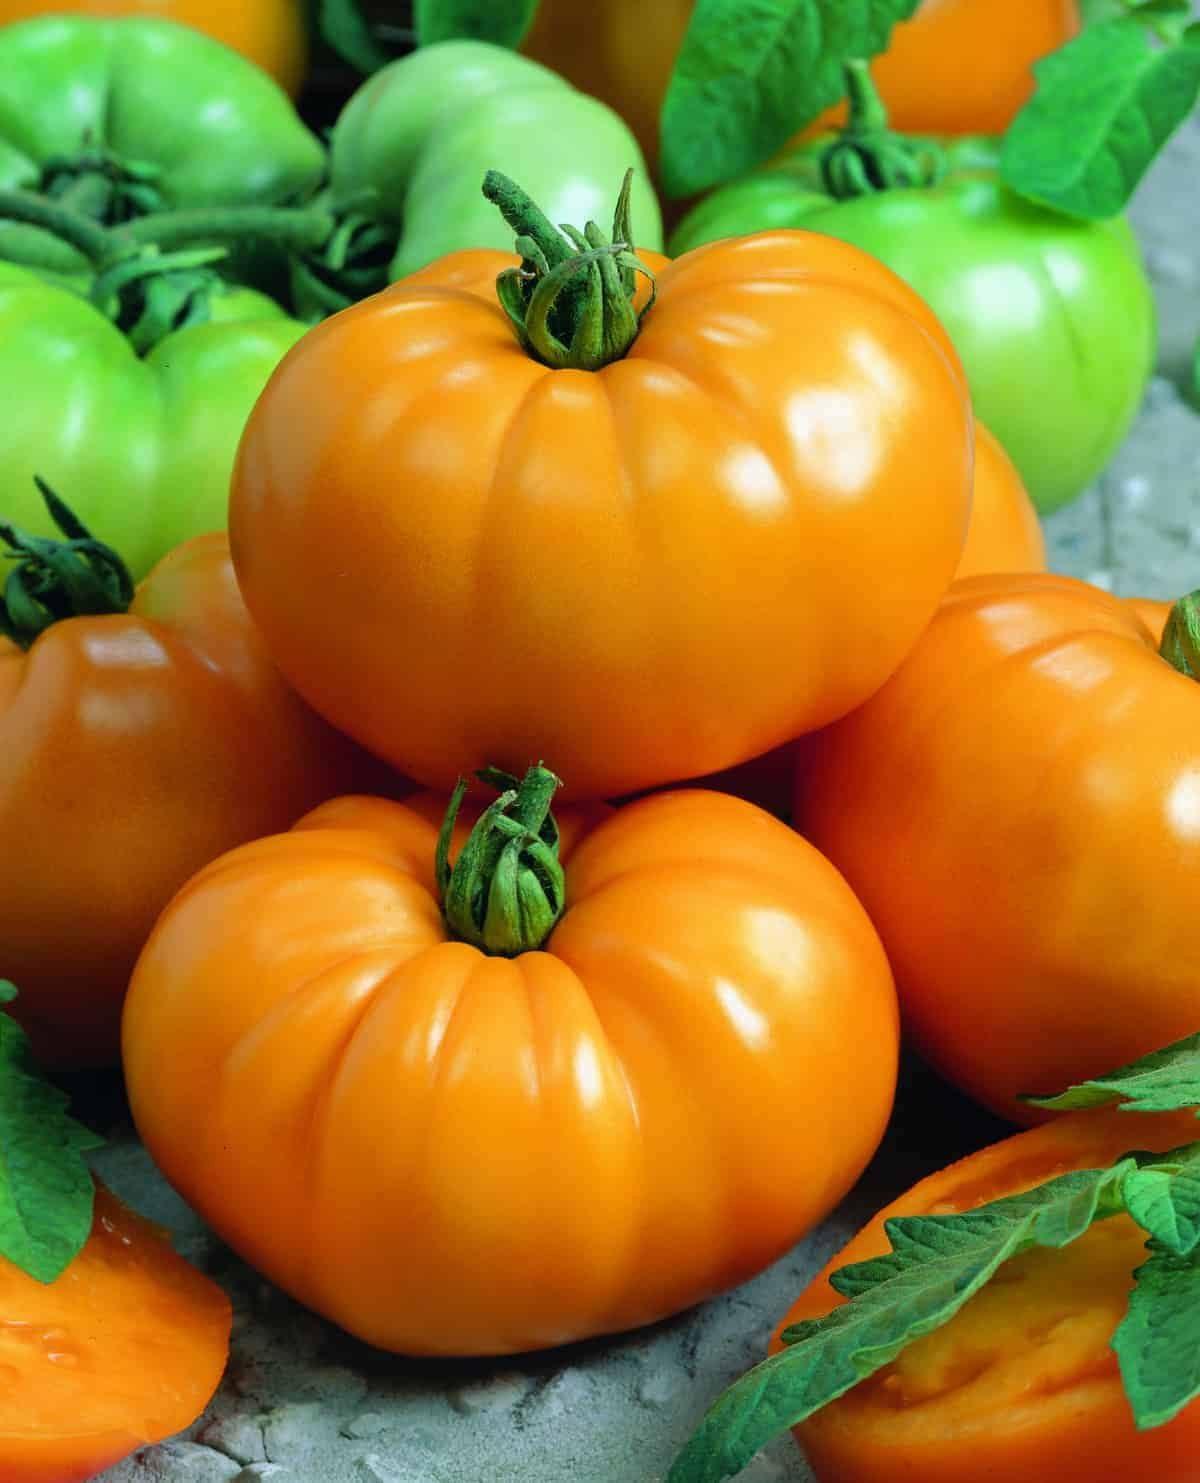 Tomato Chef's Choice Yellow F1 | All-America Selections